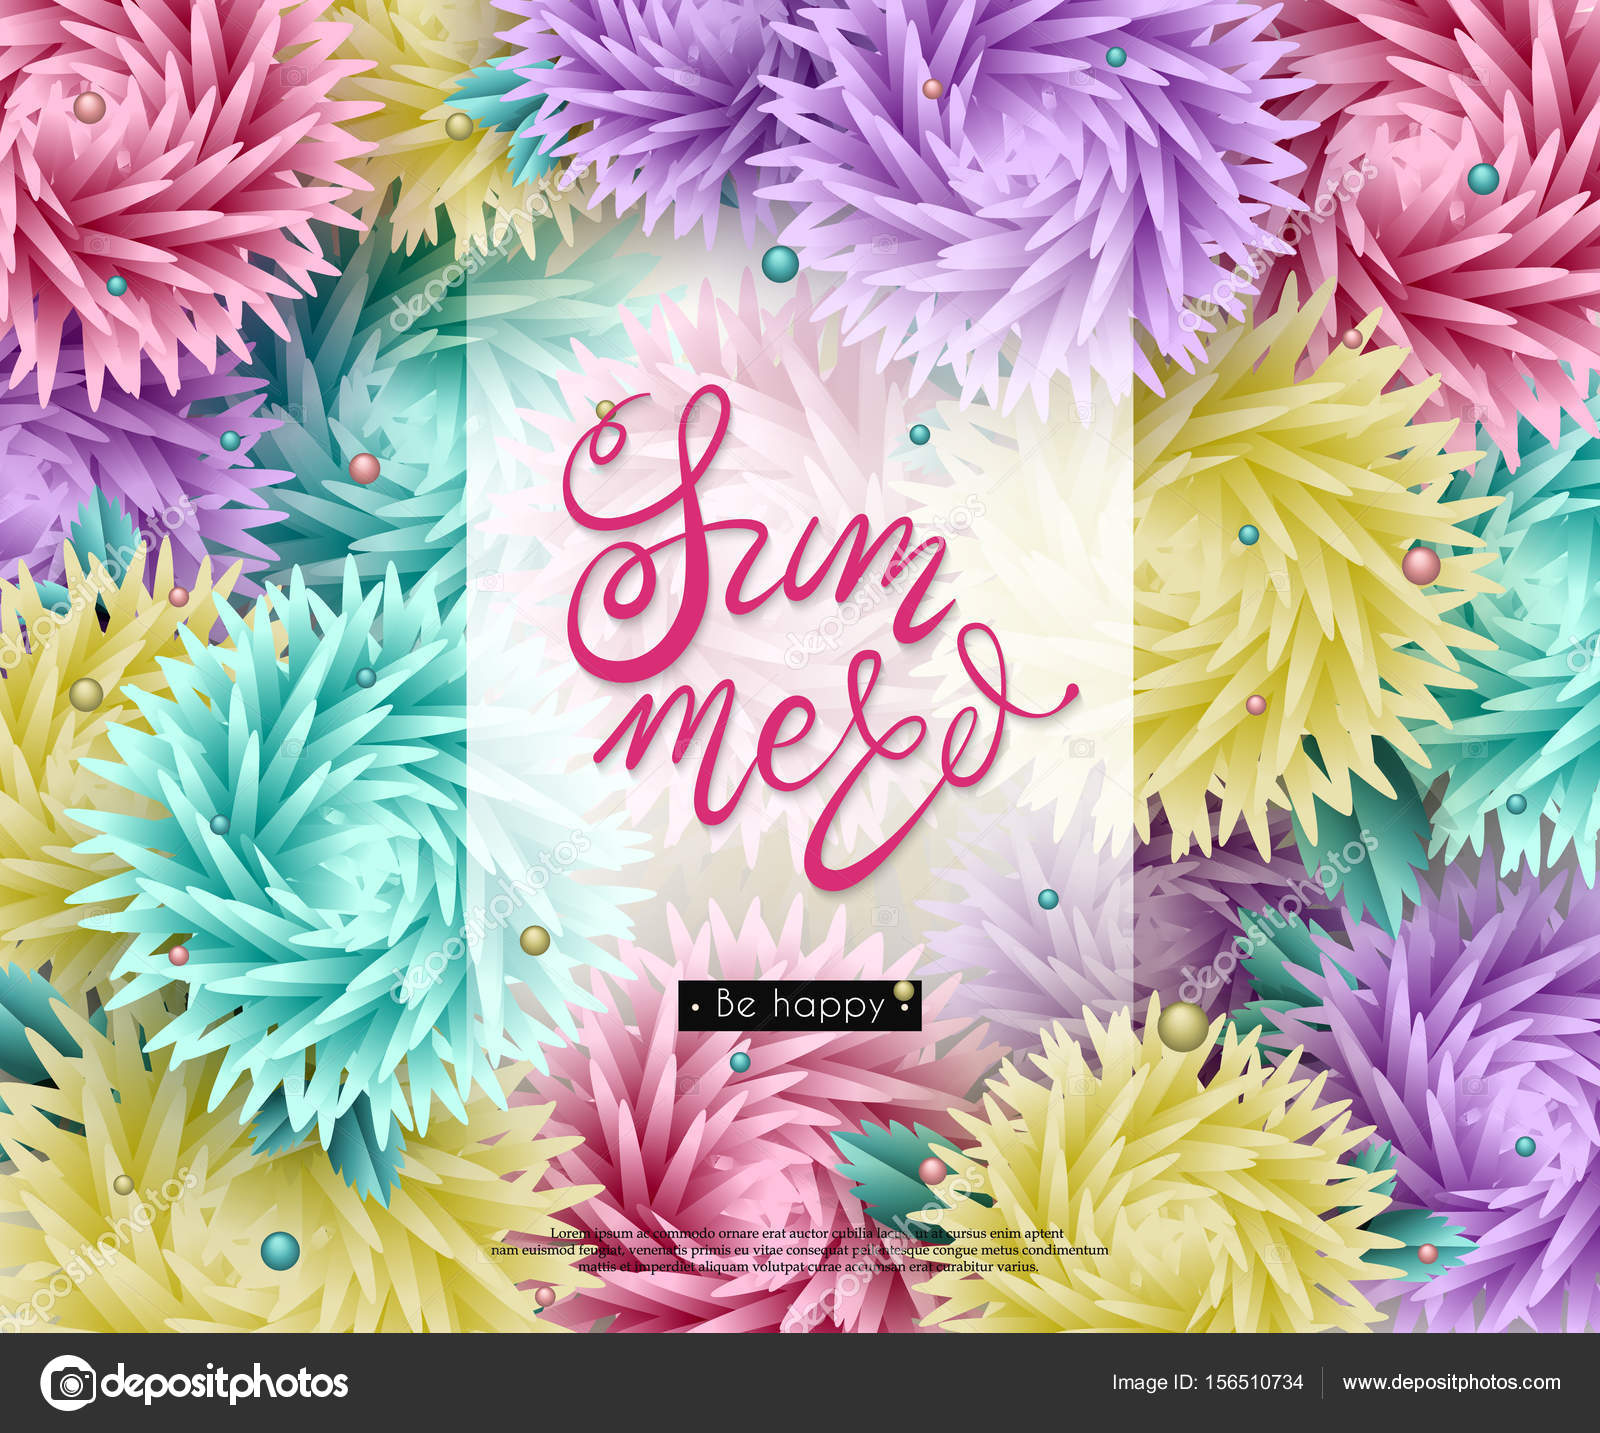 3d flowers paper origami summer 01 stock vector smska 156510734 3d stylized multicolored flowers with leaves on a white background abstract floral origami pattern paper style element for design mightylinksfo